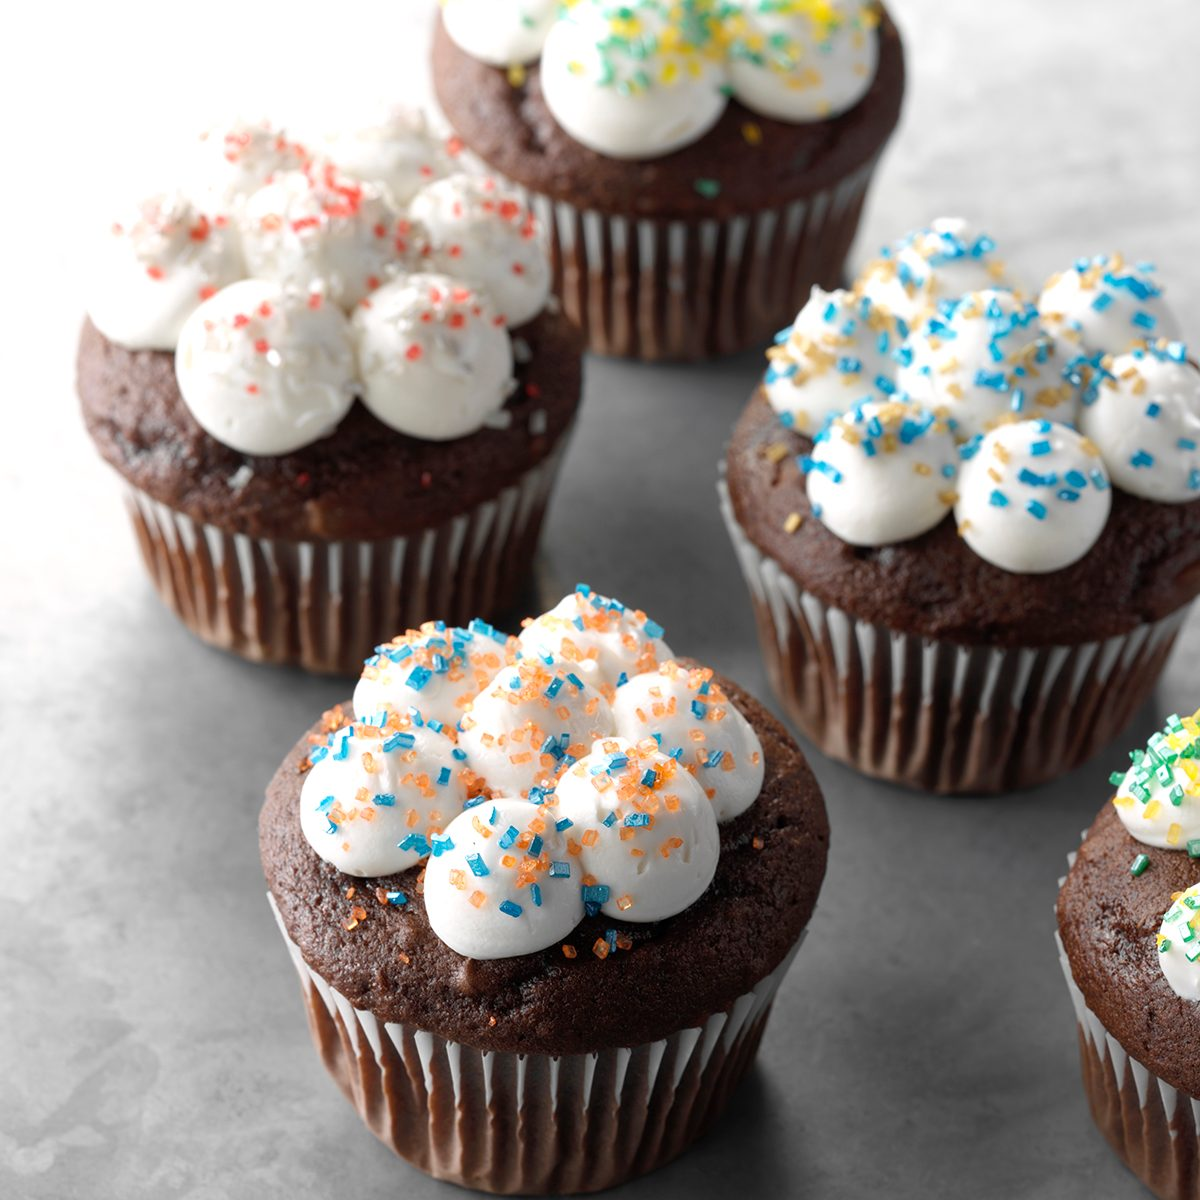 11 Easy Cupcake Decorating Ideas